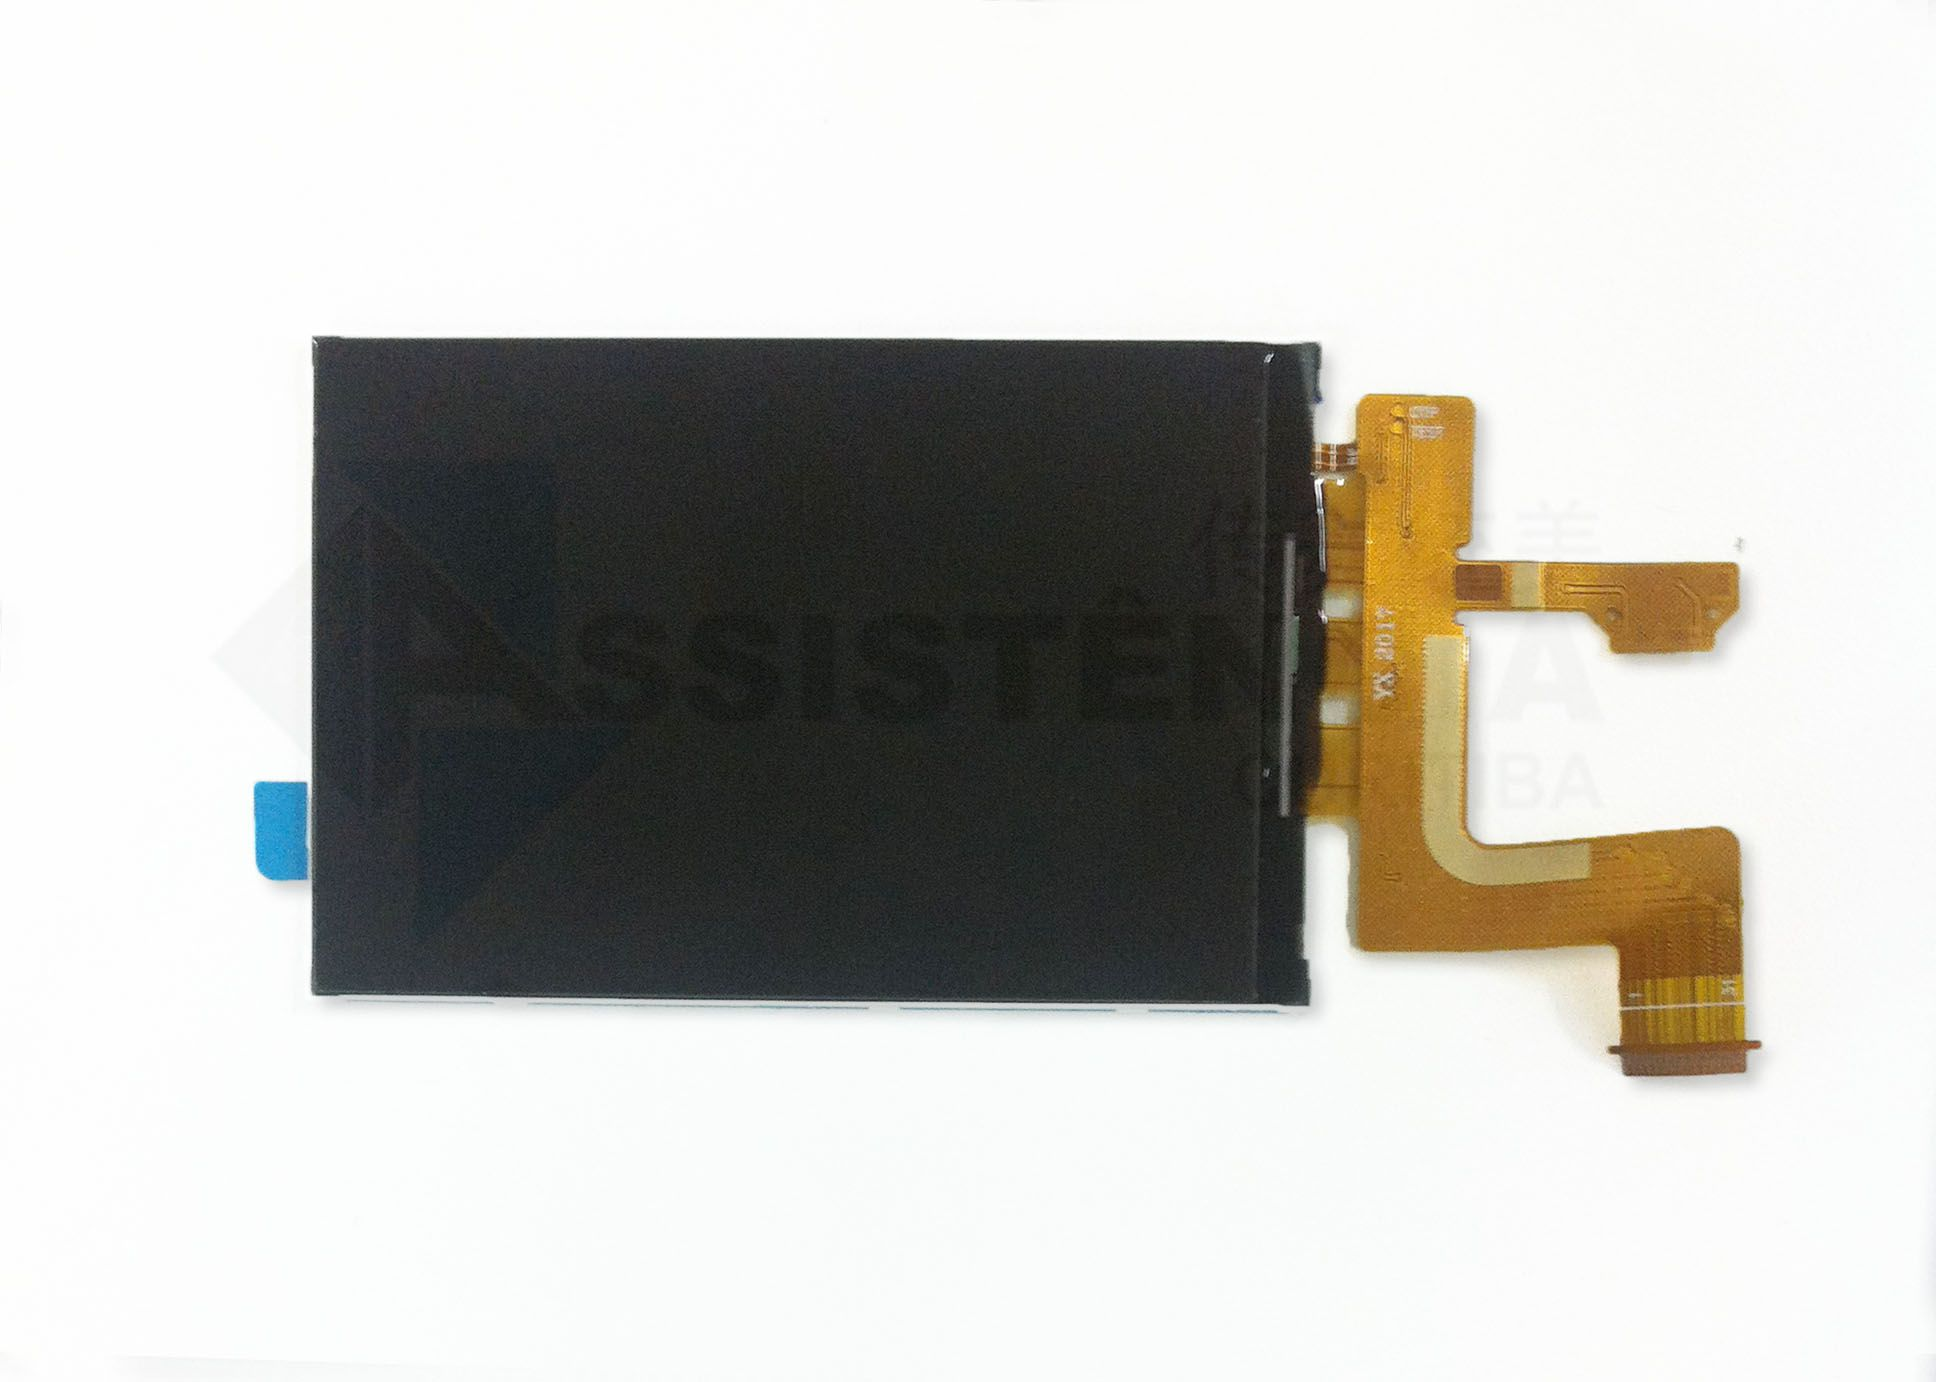 TELA DISPLAY LCD CELULAR ALCATEL PIXI 4 OT4017 4017 3.5